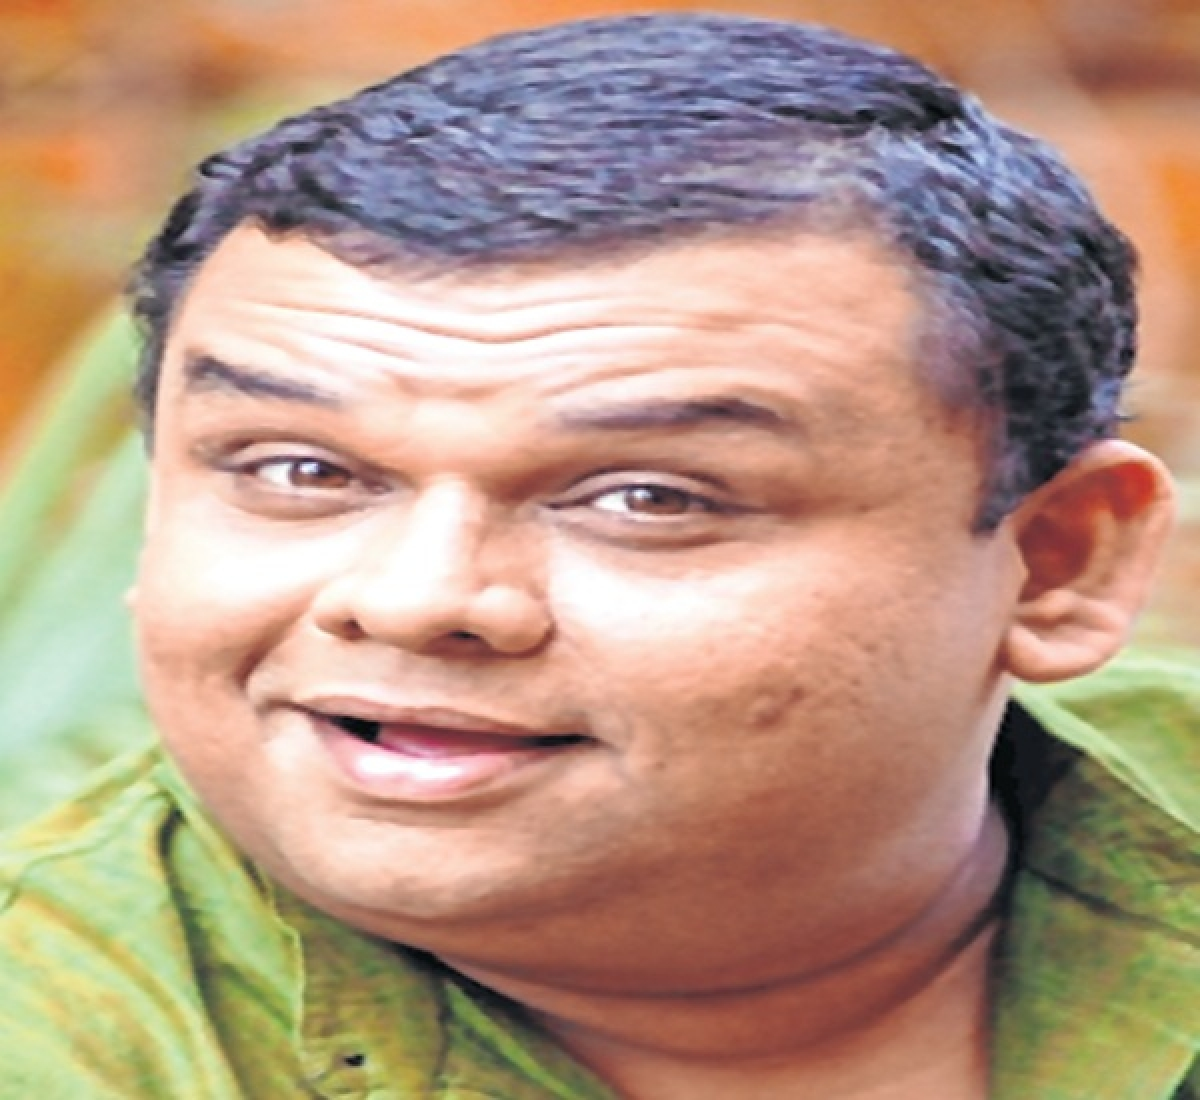 Mumbai: Actor duped online for a bag, approaches police